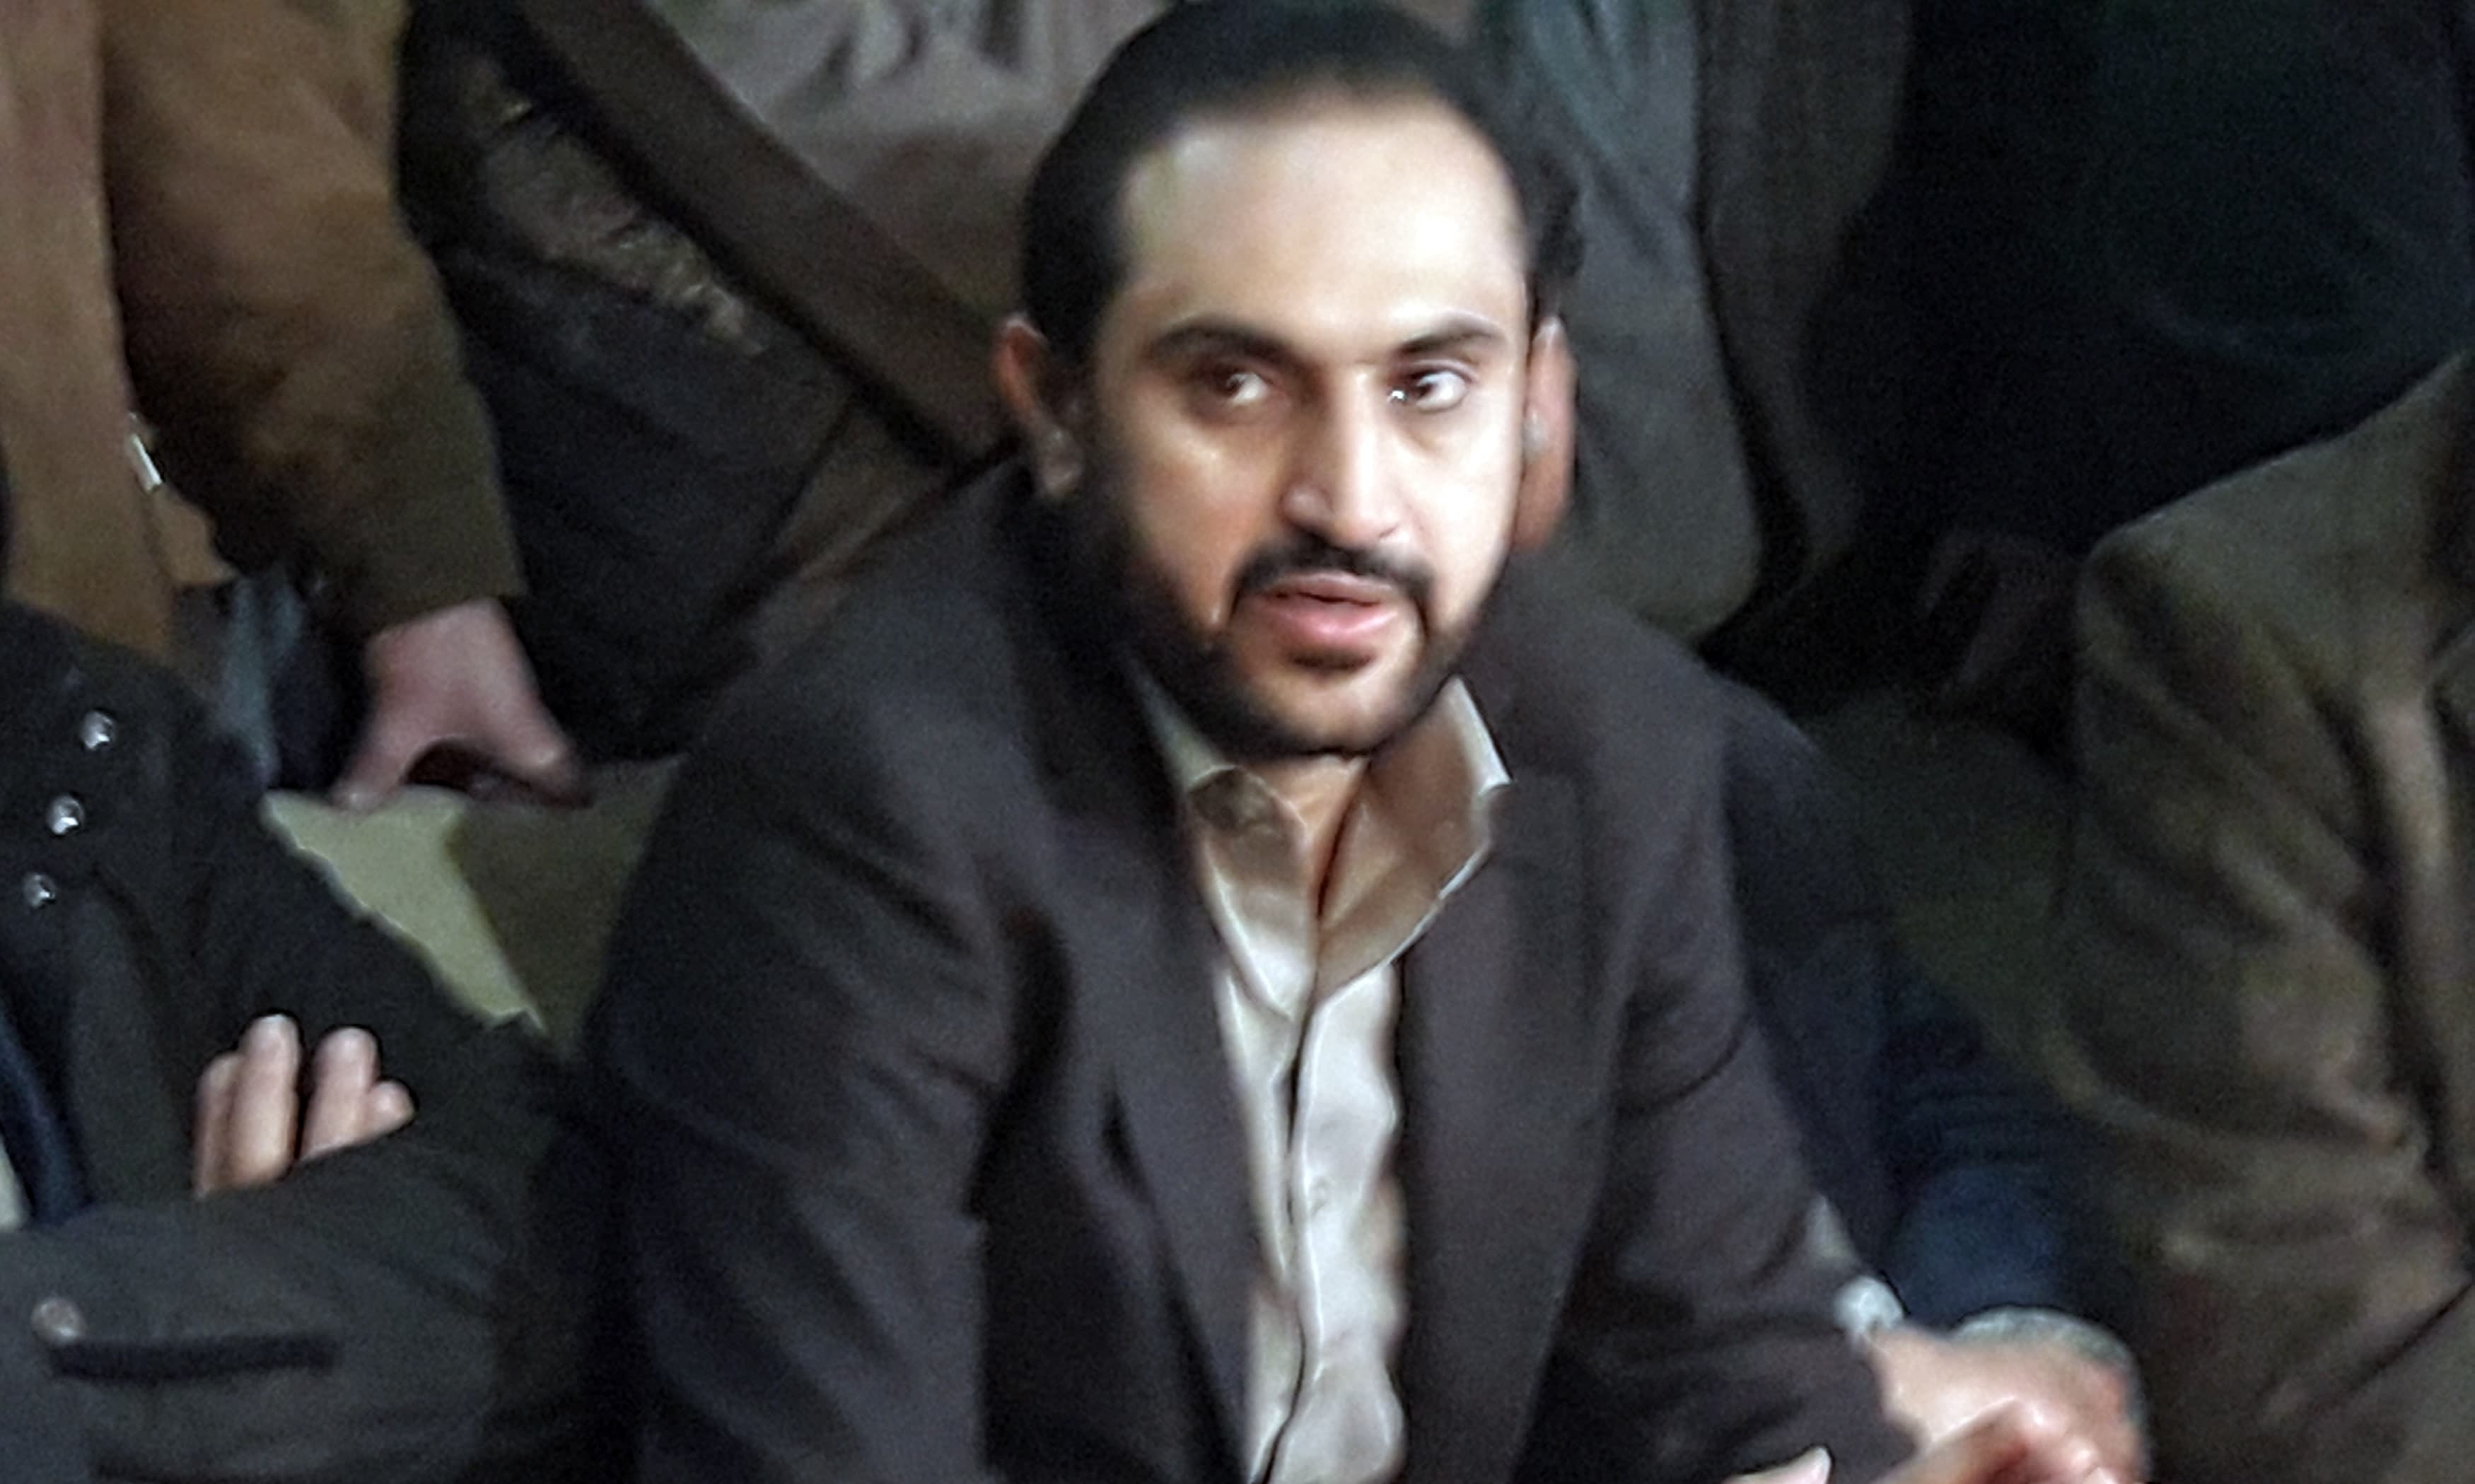 Balochistan Assembly Speaker Mir Abdul Qudoos Bizenjo has directed the officials concerned to submit details of the earthquake victims of Washuk district. — Syed Ali Shah/File